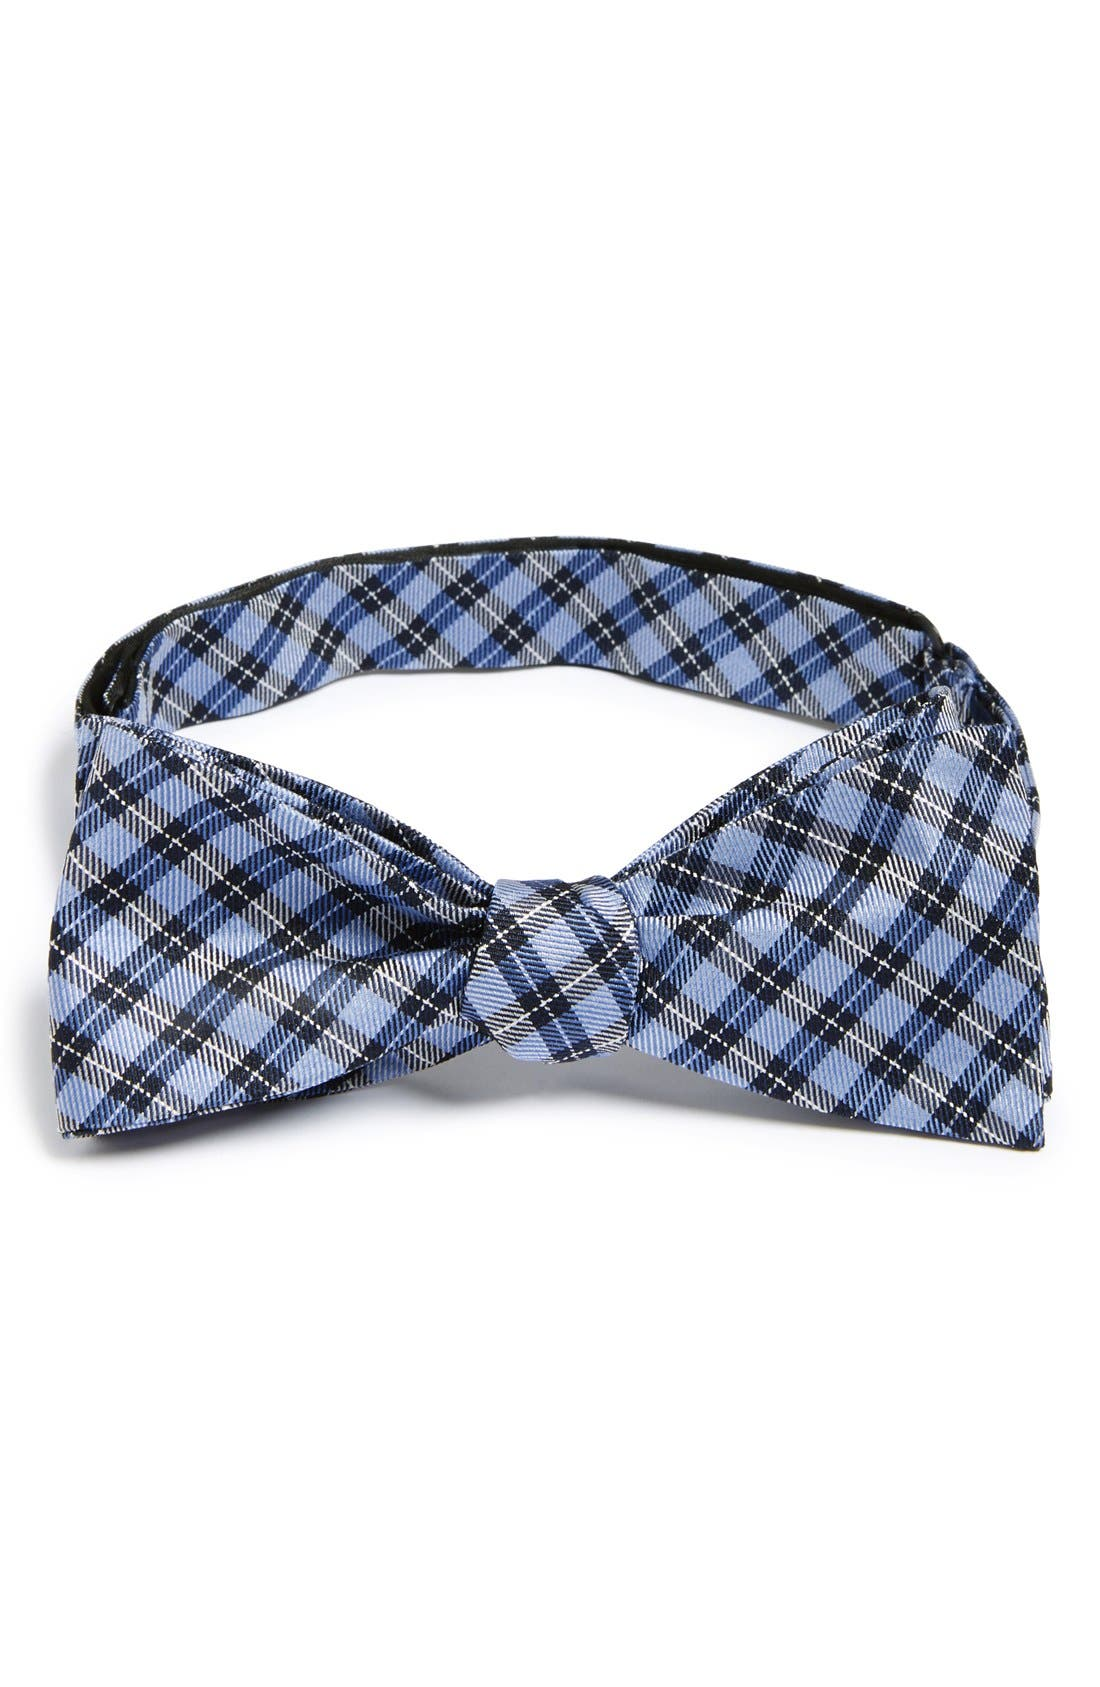 Alternate Image 1 Selected - 1901 'Choi' Check Silk Bow Tie